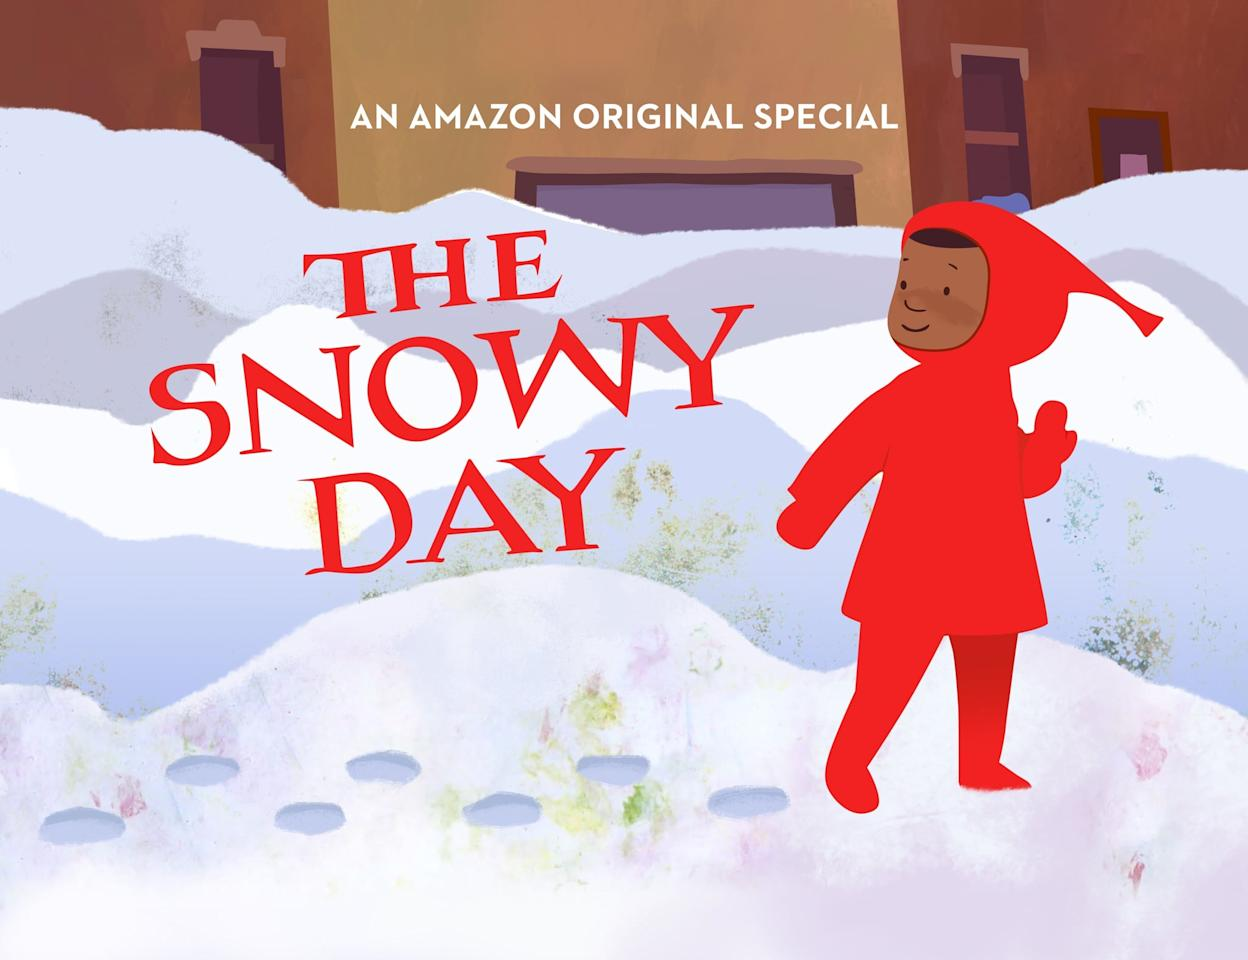 """<p><strong>What it's about:</strong> """"Based on the award-winning book by Ezra Jack Keats, Peter goes on a magical, snowy walk to his Nana's house to bring home their Christmas Eve dinner.""""</p> <p><a href=""""https://www.popsugar.com/buy?url=https%3A%2F%2Fwww.amazon.com%2Fgp%2Fvideo%2Fdetail%2FB01MRH17T7&p_name=Watch%20%3Cstrong%3EThe%20Snowy%20Day%3C%2Fstrong%3E%20here%21&retailer=amazon.com&evar1=moms%3Aus&evar9=46865995&evar98=https%3A%2F%2Fwww.popsugar.com%2Ffamily%2Fphoto-gallery%2F46865995%2Fimage%2F46867142%2FSnowy-Day&list1=movies%2Choliday%2Cchristmas%2Choliday%20movies%2Canimated%20movies%2Ckid%20tv%20and%20movies%2Choliday%20for%20kids%2Cclassic%20movies&prop13=api&pdata=1"""" rel=""""nofollow"""" data-shoppable-link=""""1"""" target=""""_blank"""" class=""""ga-track"""" data-ga-category=""""Related"""" data-ga-label=""""https://www.amazon.com/gp/video/detail/B01MRH17T7"""" data-ga-action=""""In-Line Links"""">Watch <strong>The Snowy Day</strong> here!</a></p>"""